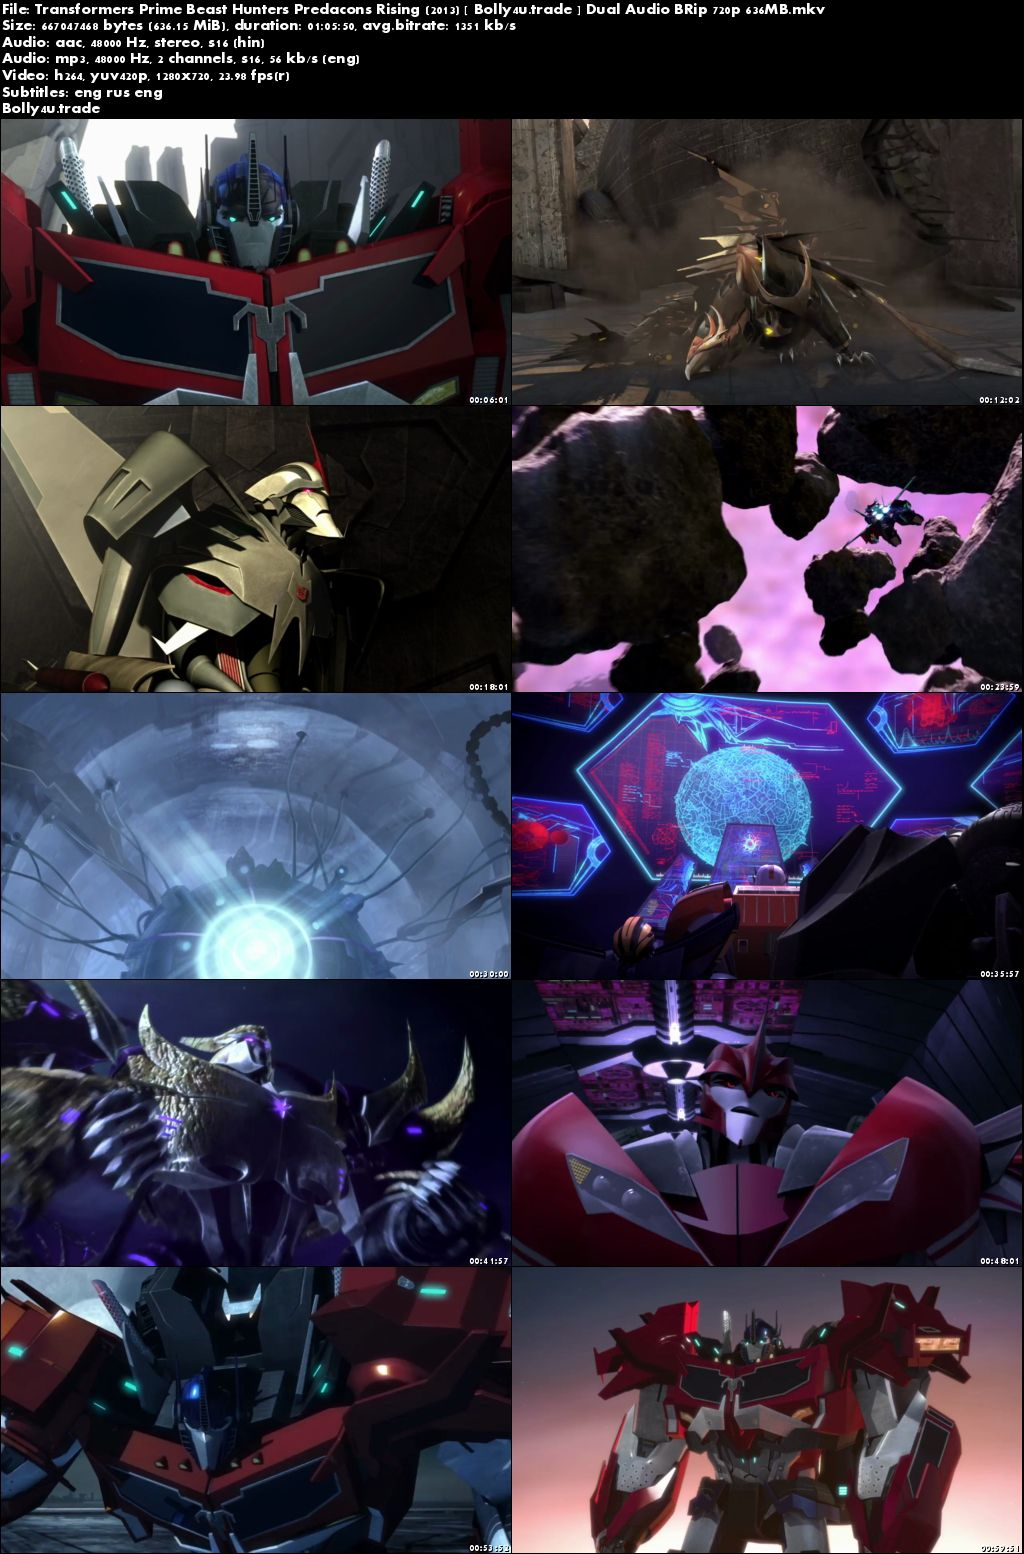 Transformers Prime Beast Hunters Predacons Rising 2013 BRRip 600MB Hindi Dual Audio 720p Download